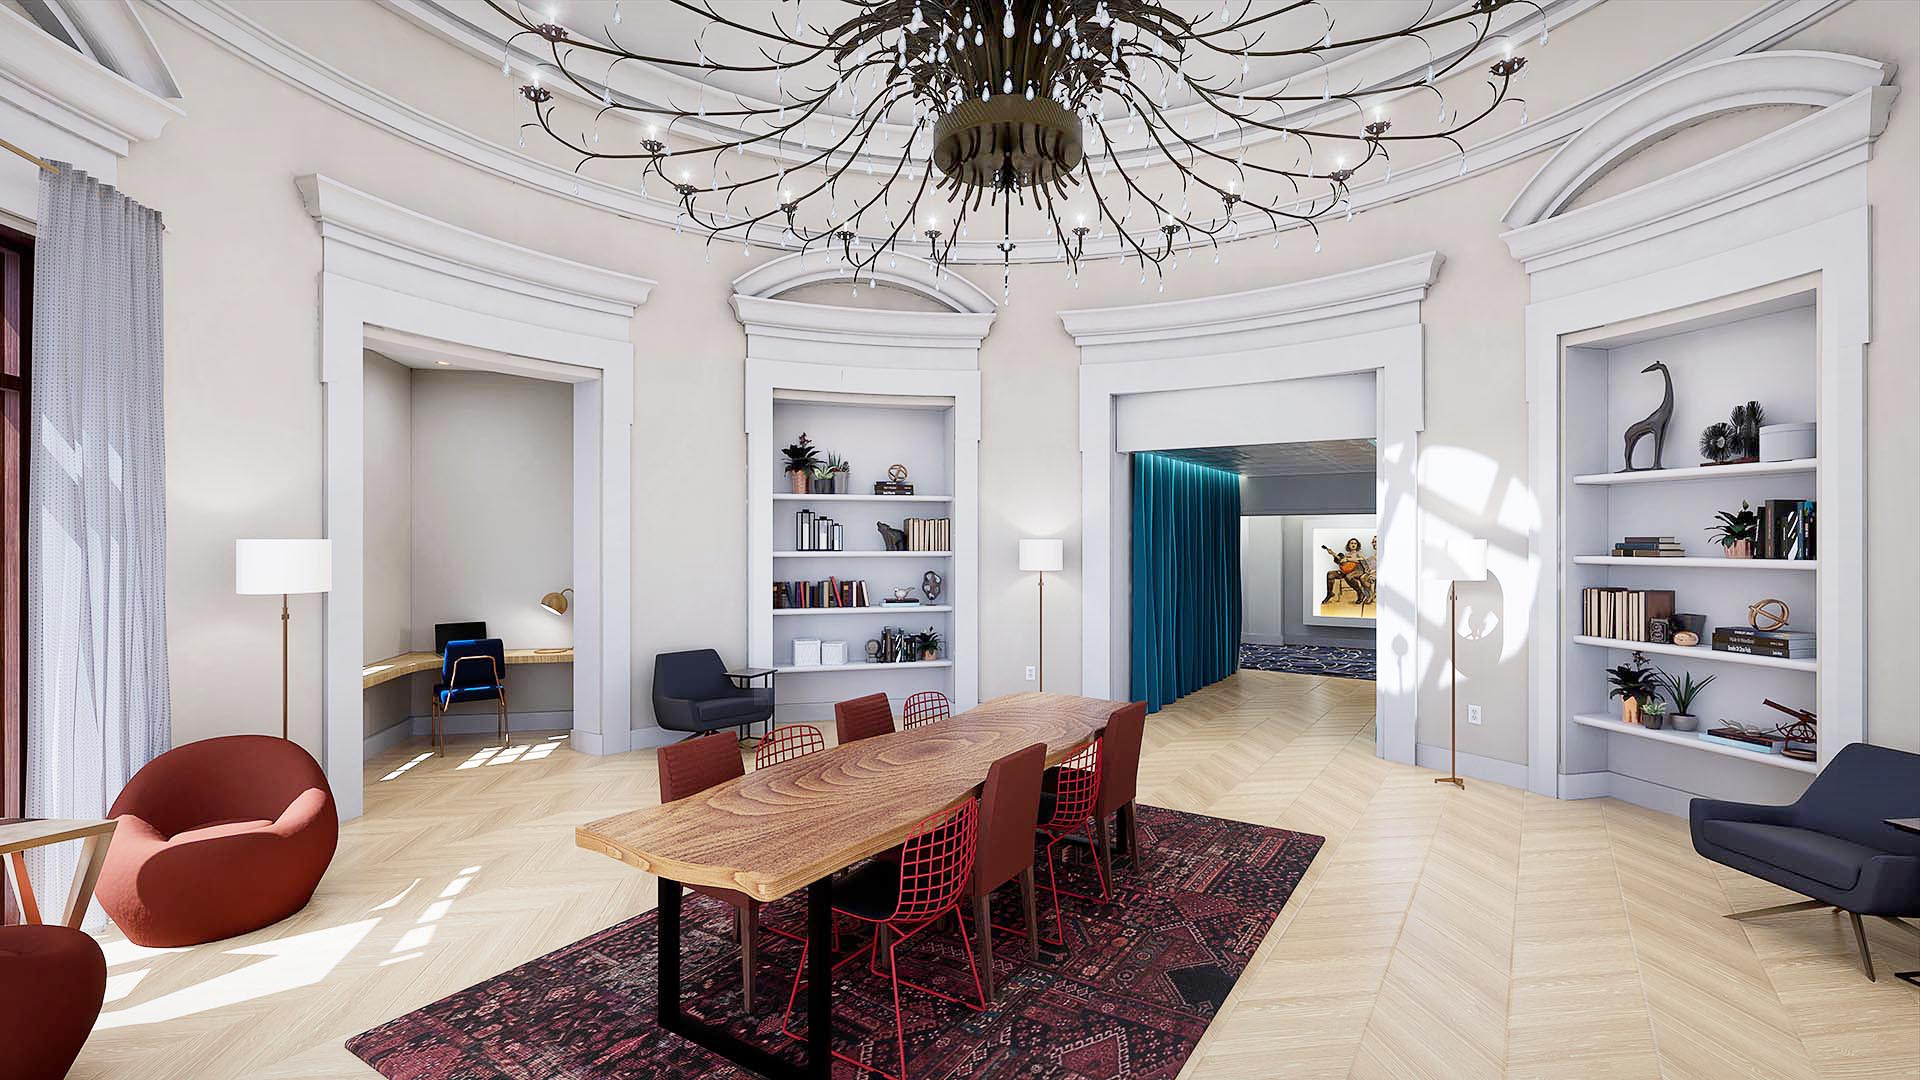 An apartment rotunda with built in shelving and chandelier lighting